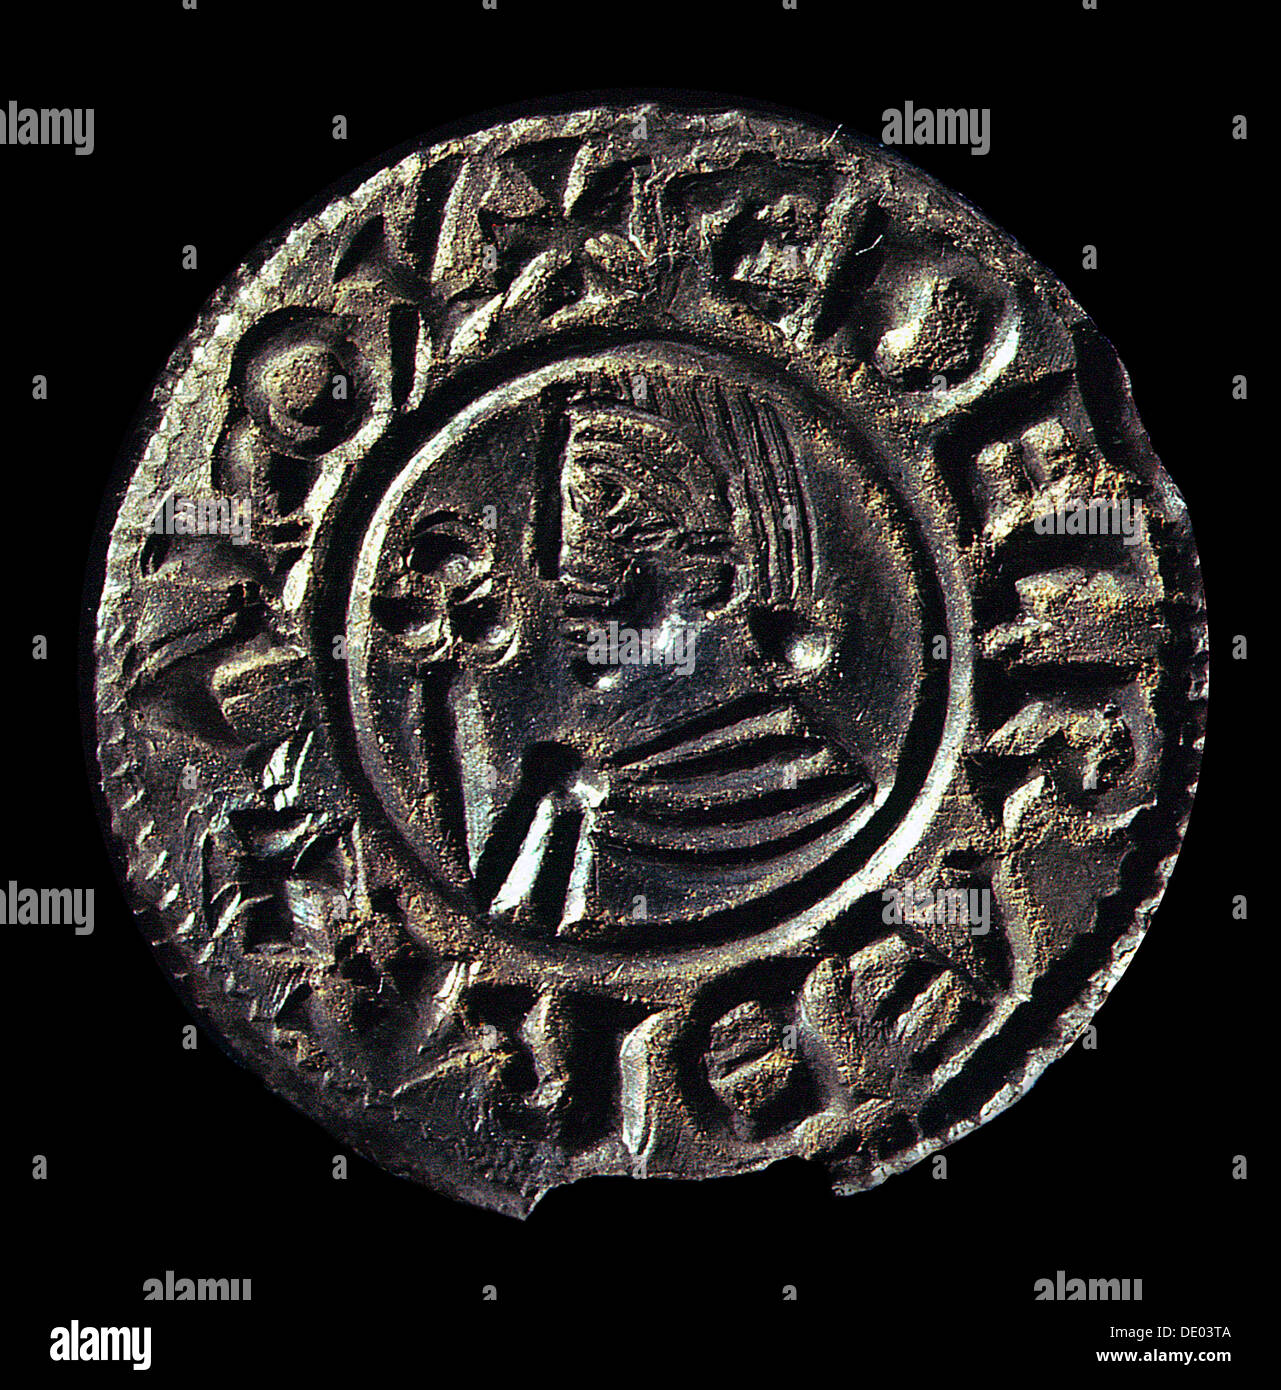 Silver penny of Ethelred II, Anglo-Saxon, late 10th or early 11th century. Artist: Werner Forman - Stock Image